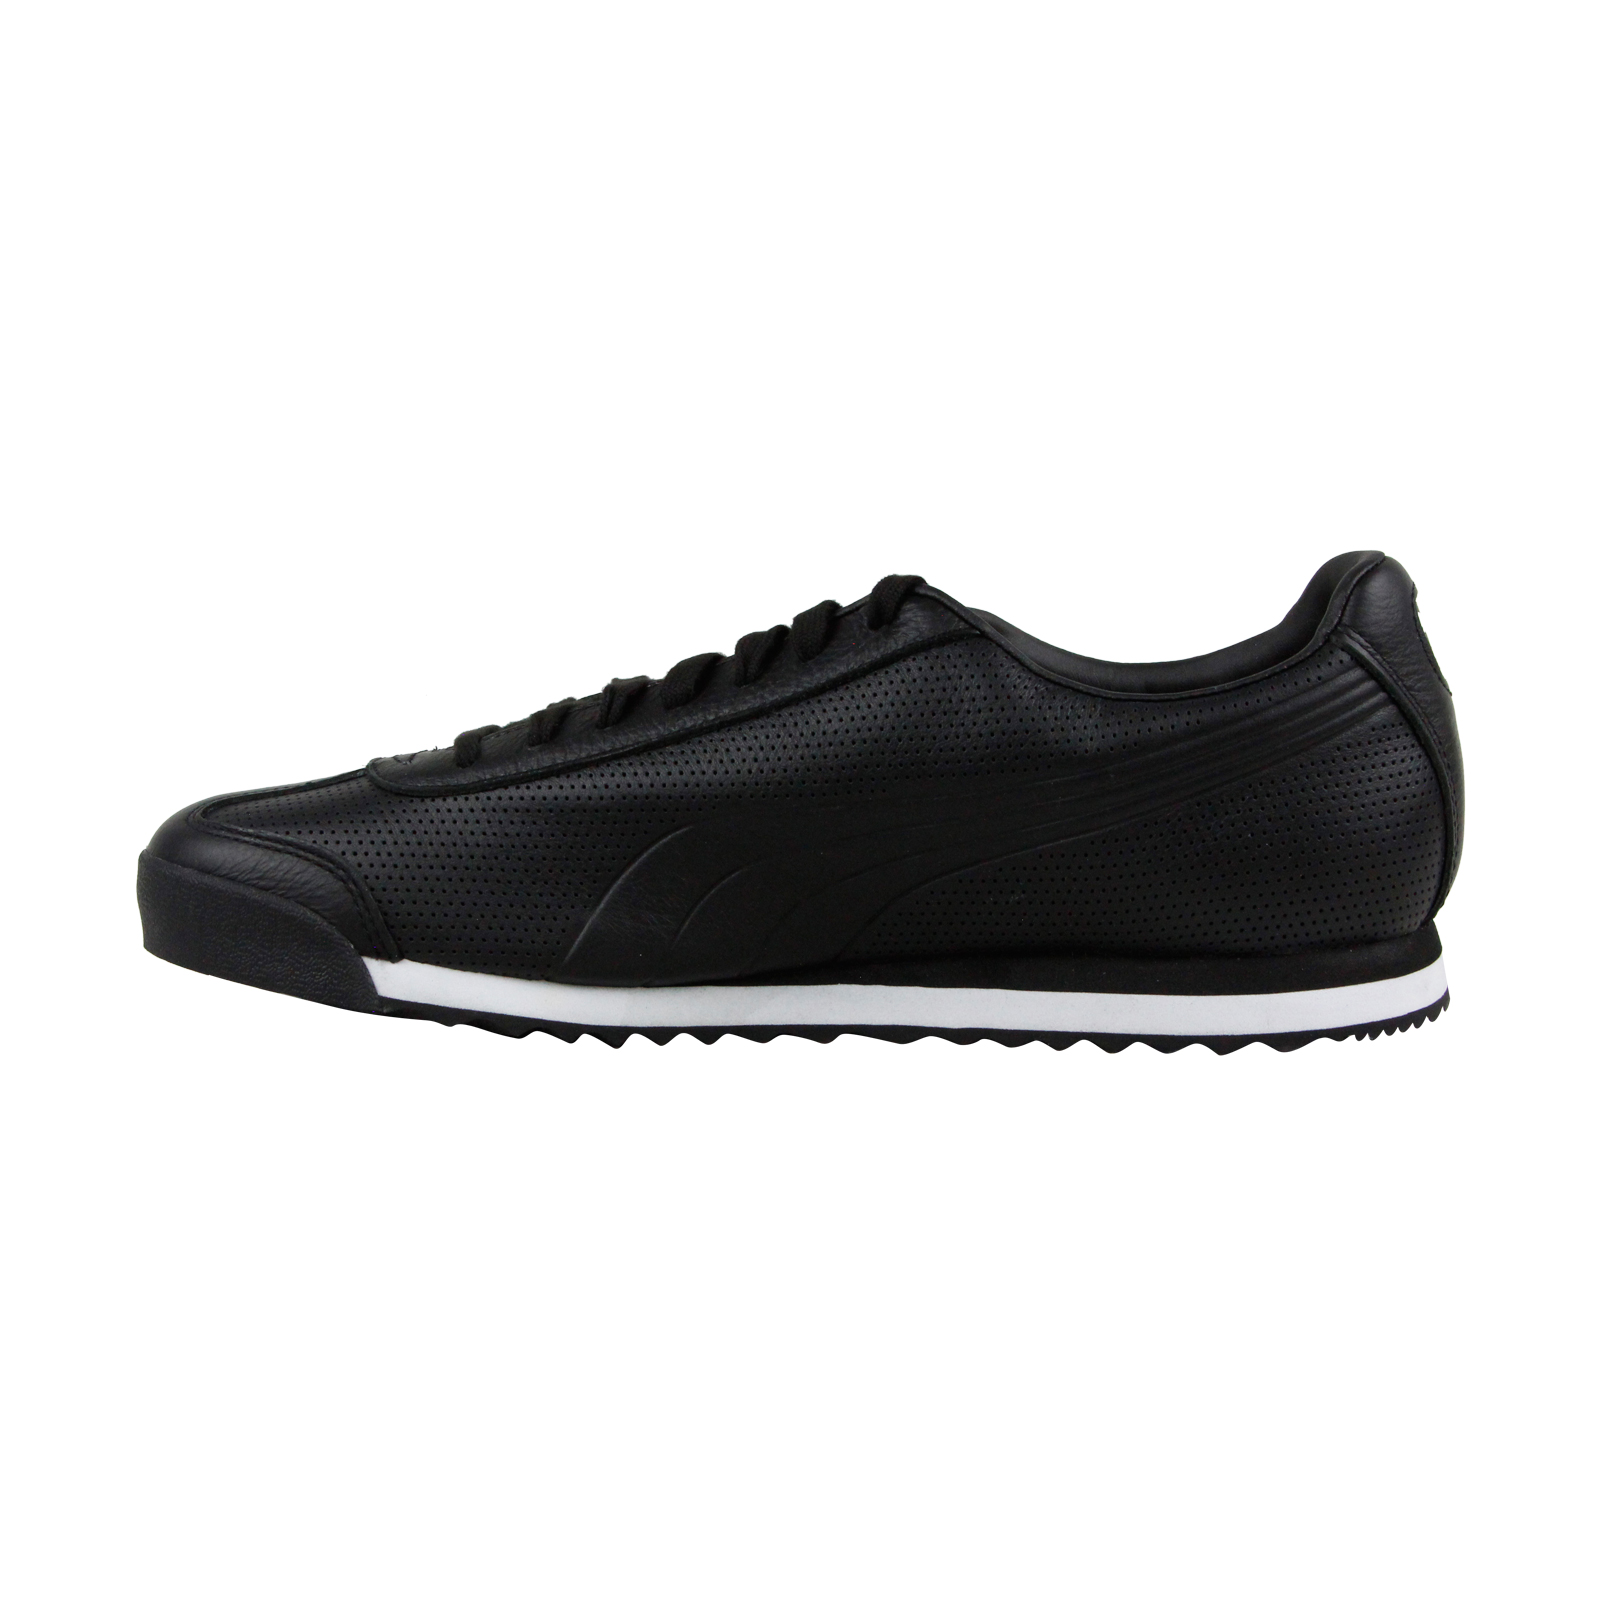 0c31b67ff83 Puma Roma Dlx Perf Mens Black Leather Lace Up Sneakers Shoes 2 2 of 3 See  More